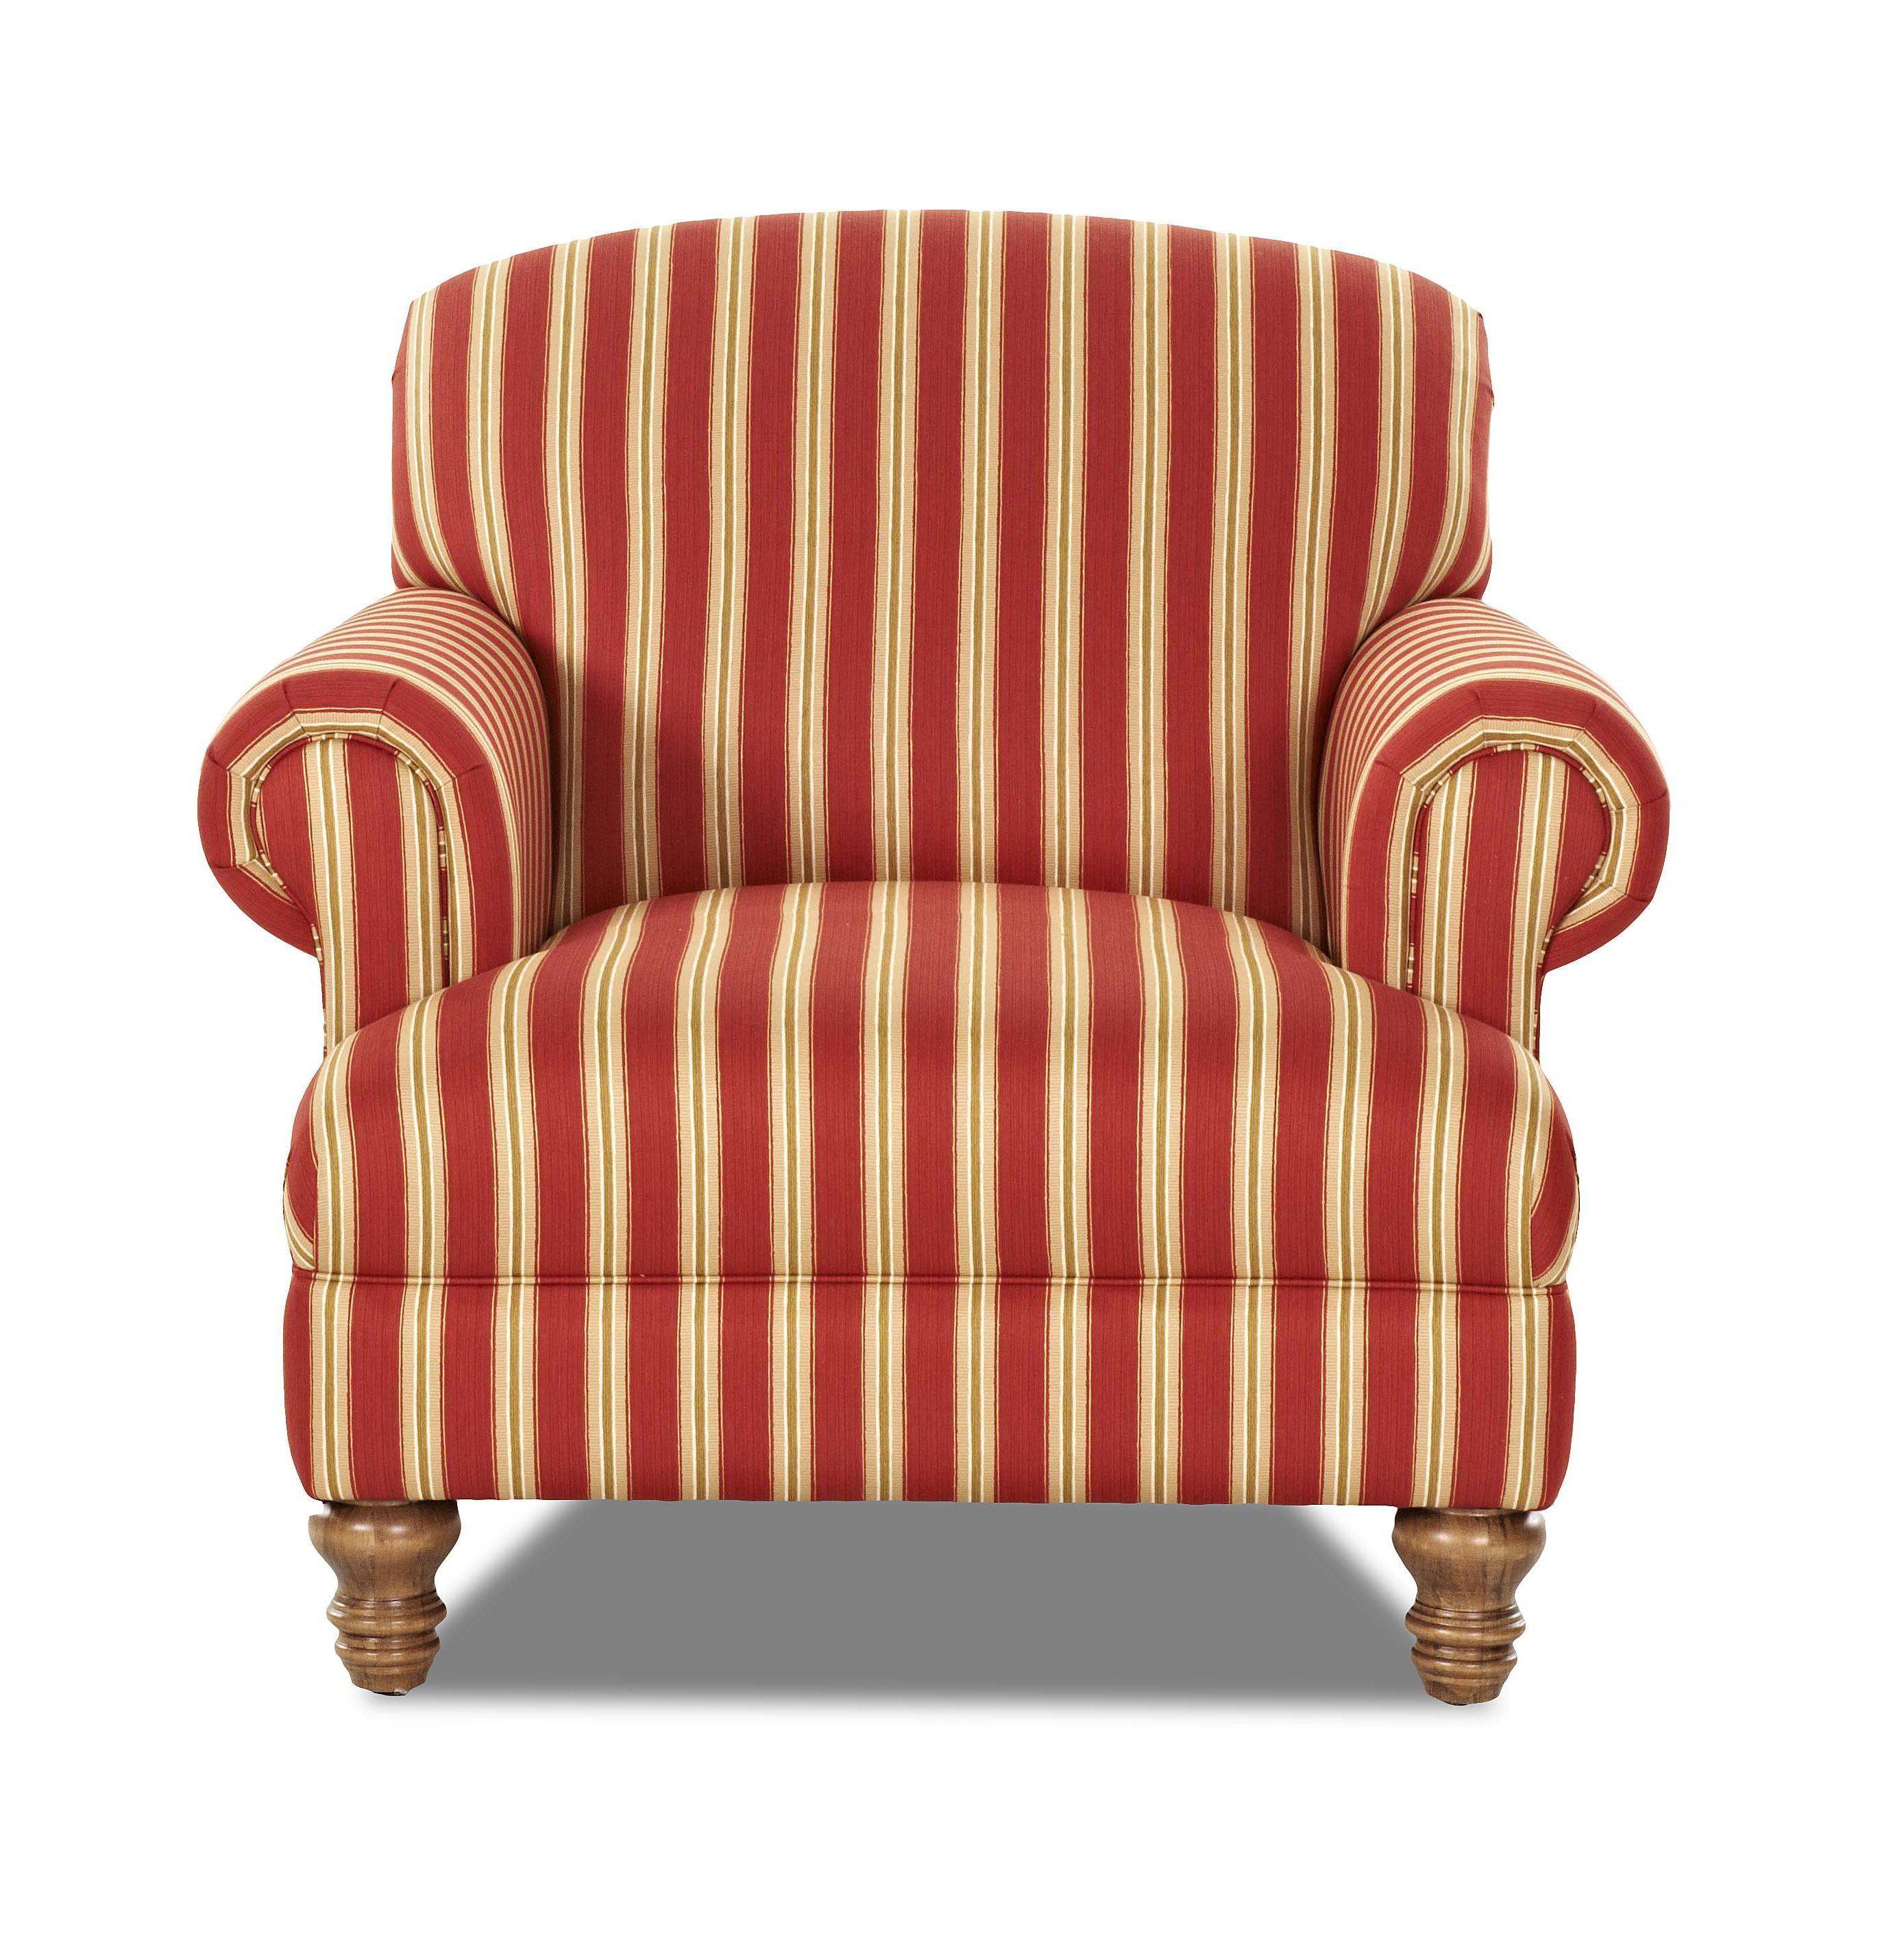 Klaussner Bailey Chair - Item Number: 2440 C-PicketRed